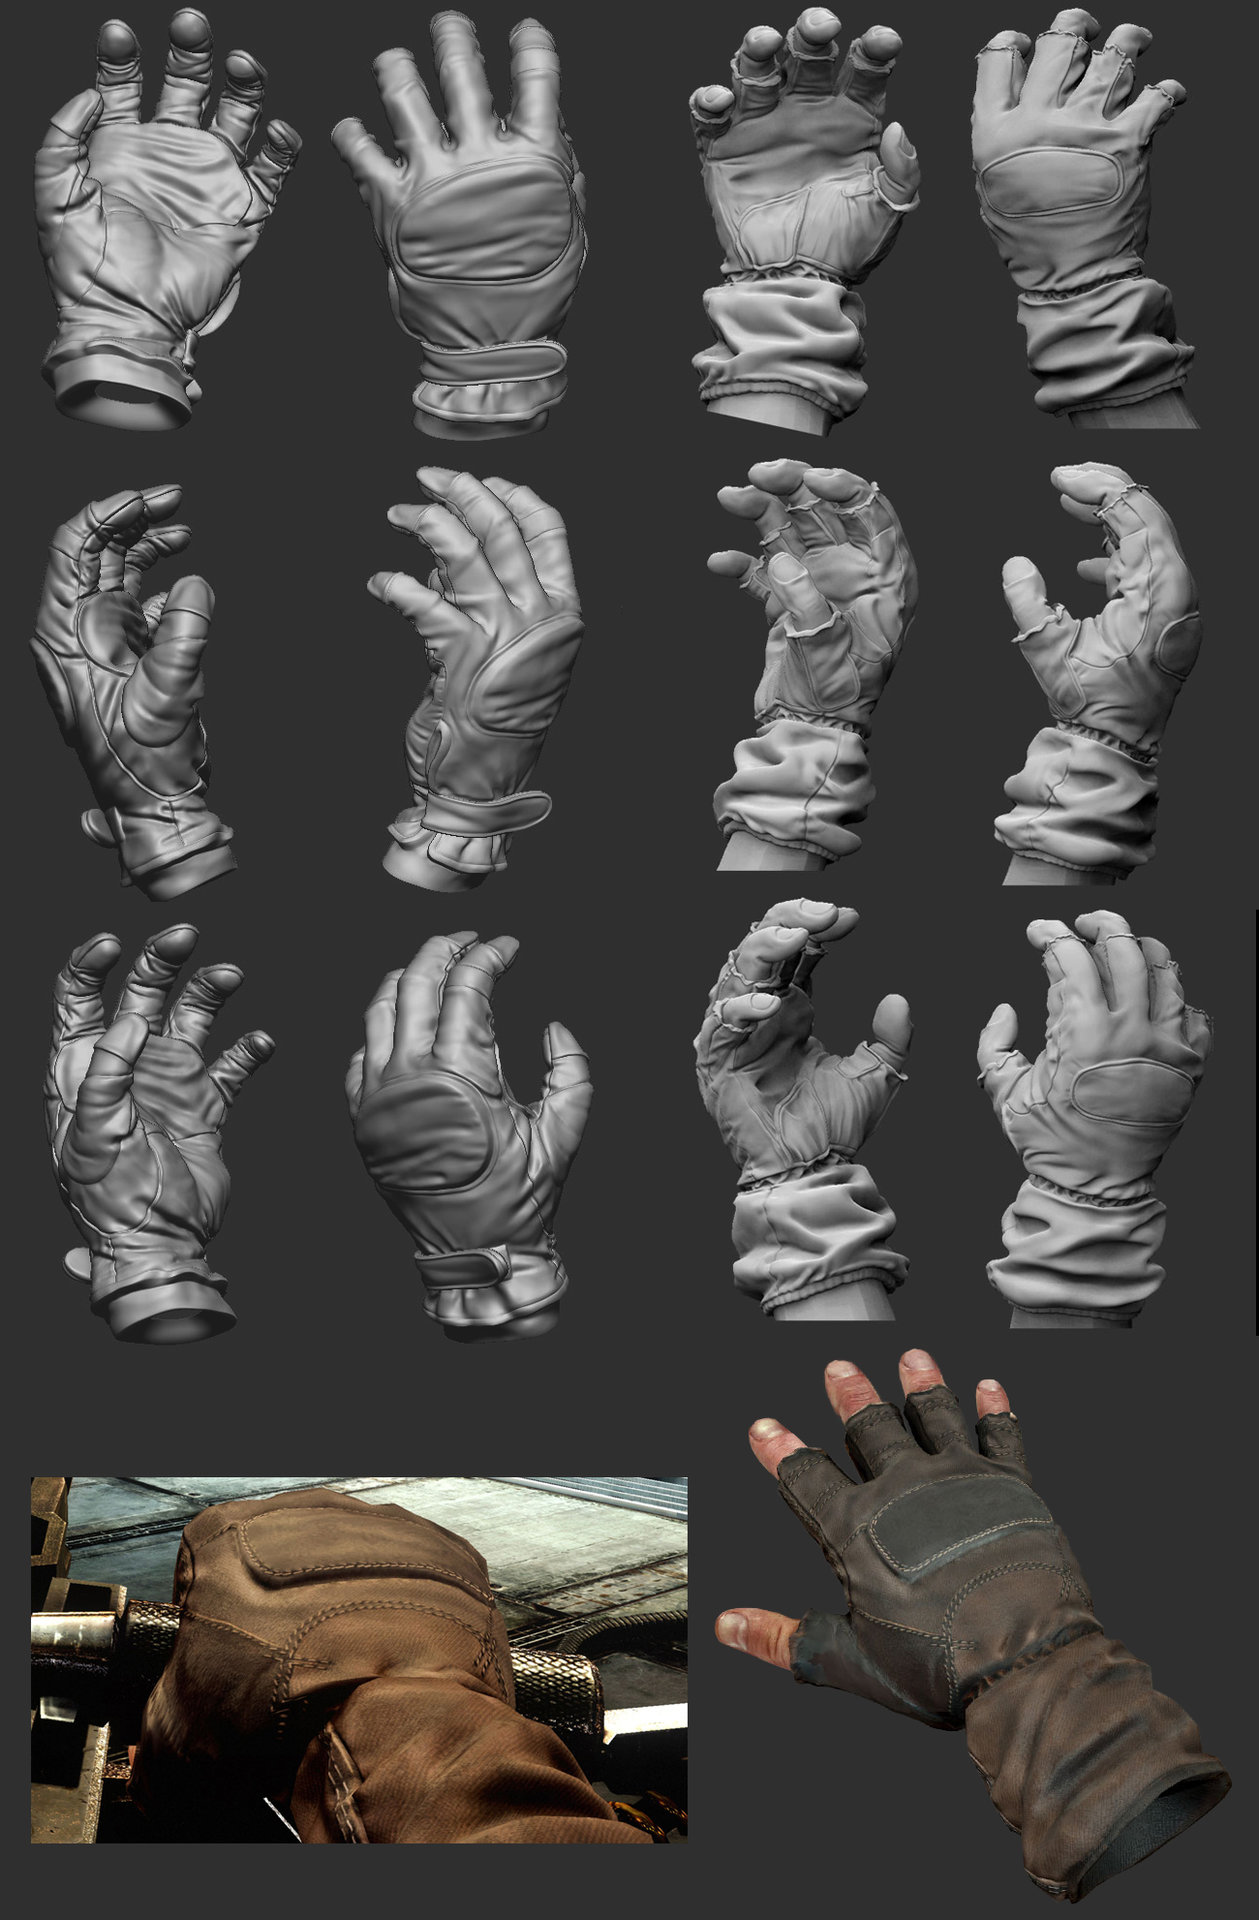 Rudy massar killzone 3 isa gloves zbrush sculpt